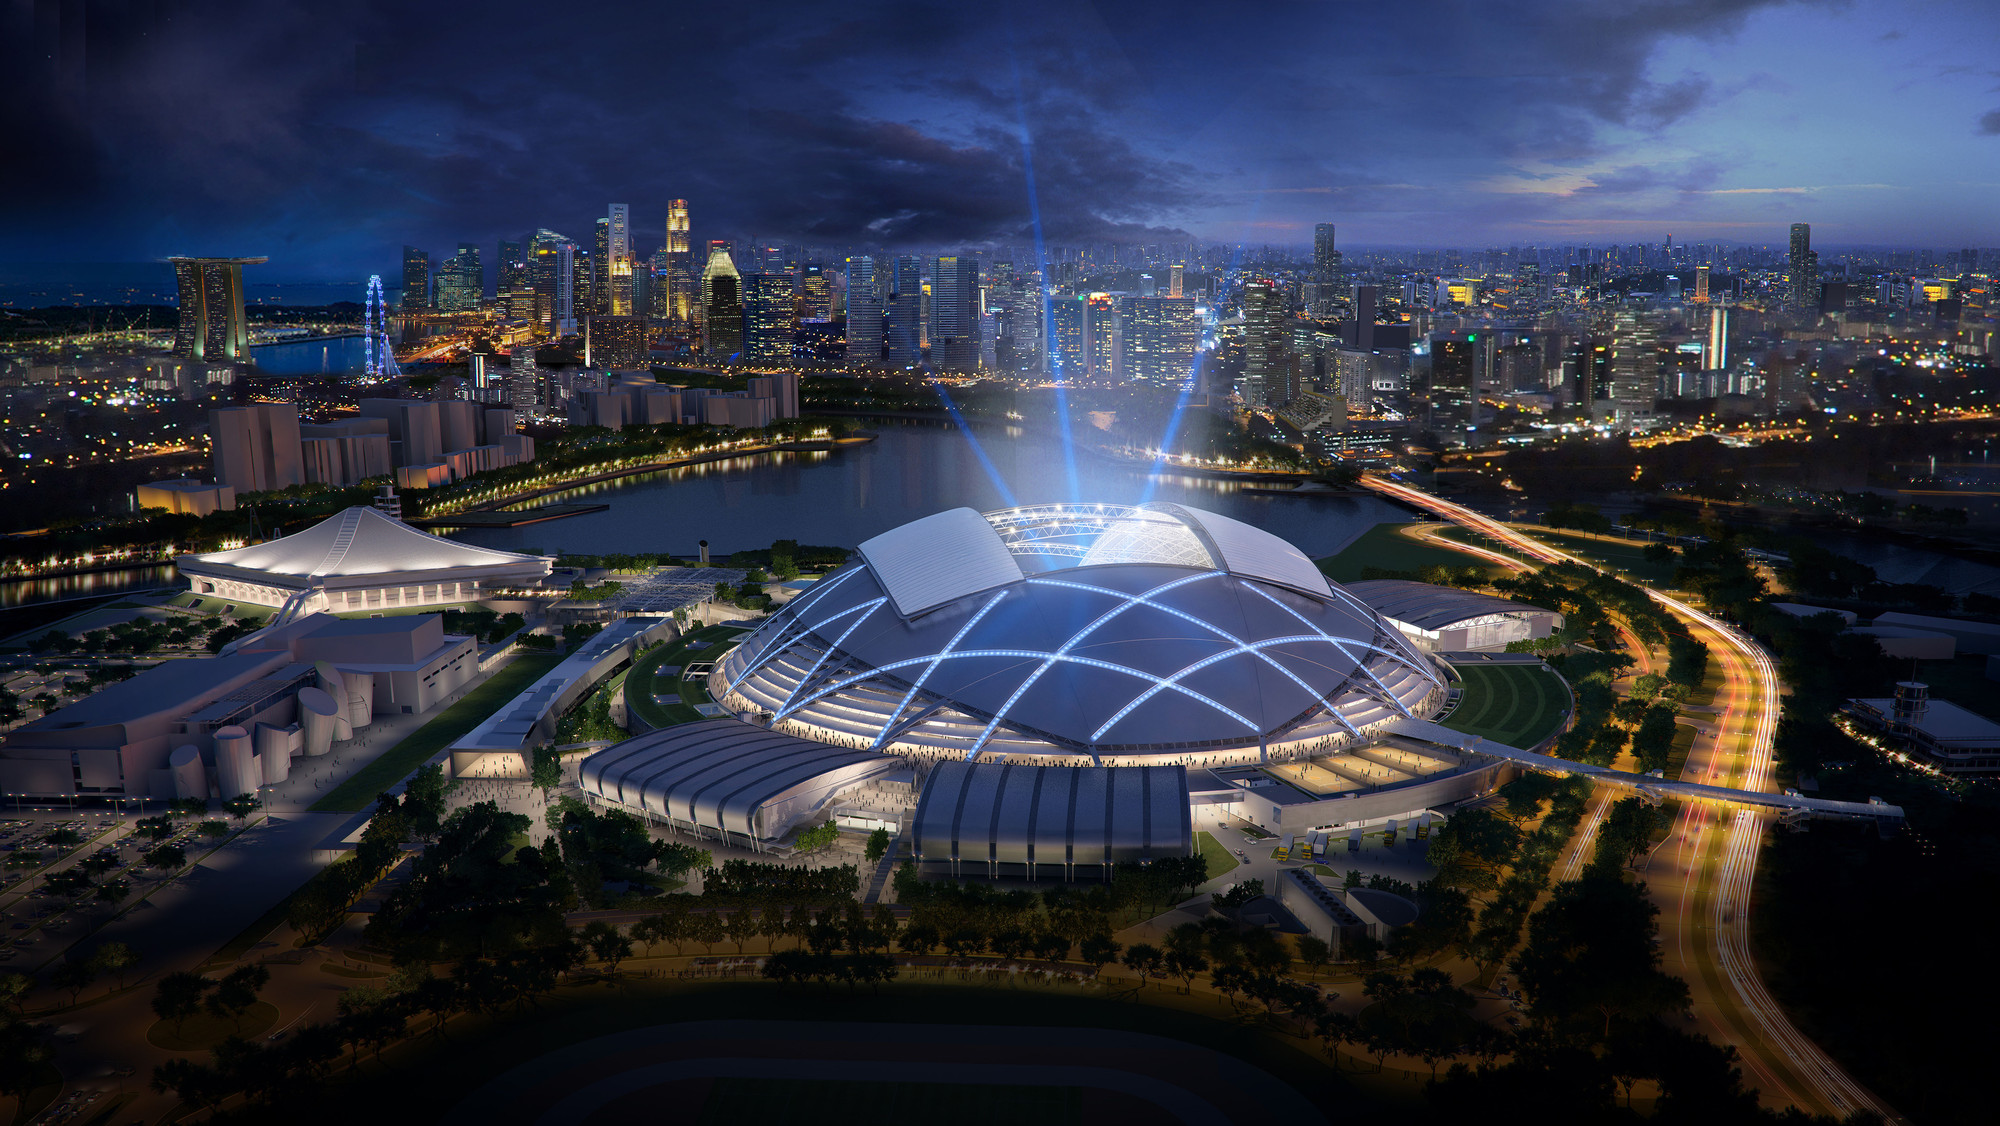 Future projects leisure-led development winner: Singapore Sports Hub by Singapore Sports Hub Design